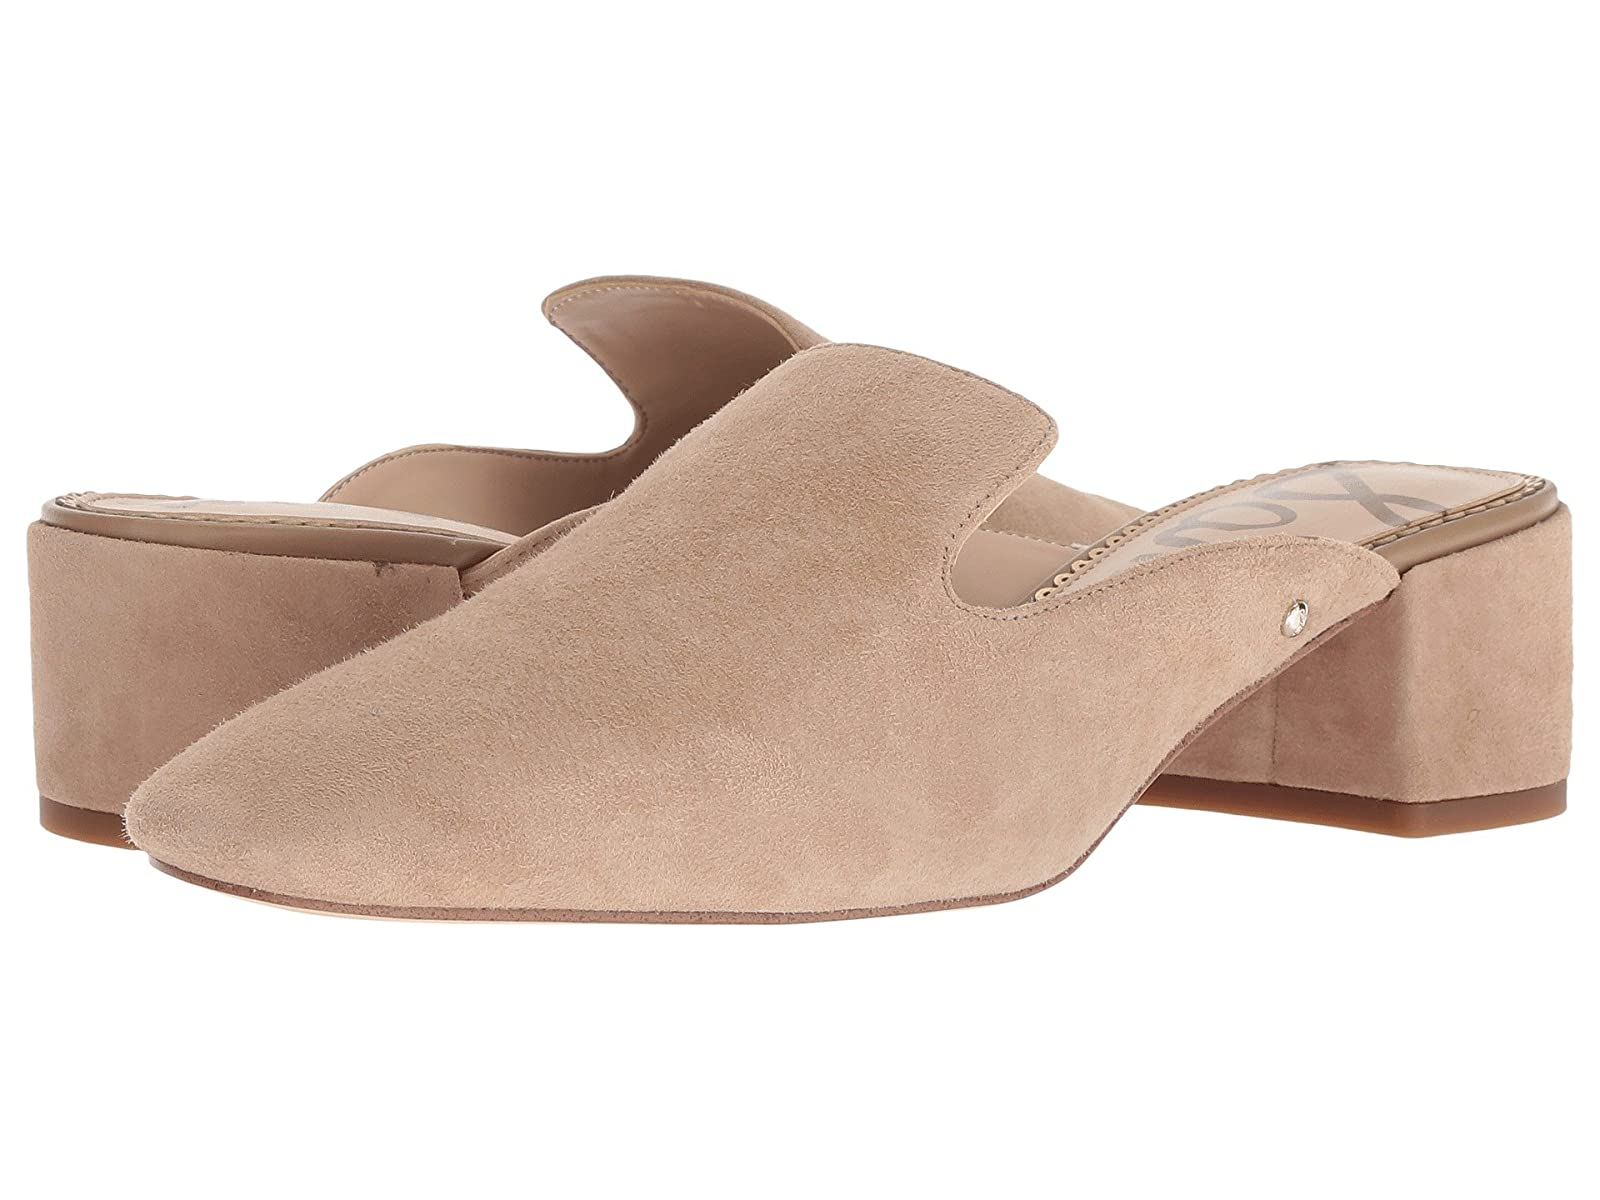 Sam Edelman AdairAtmospheric grades have affordable shoes